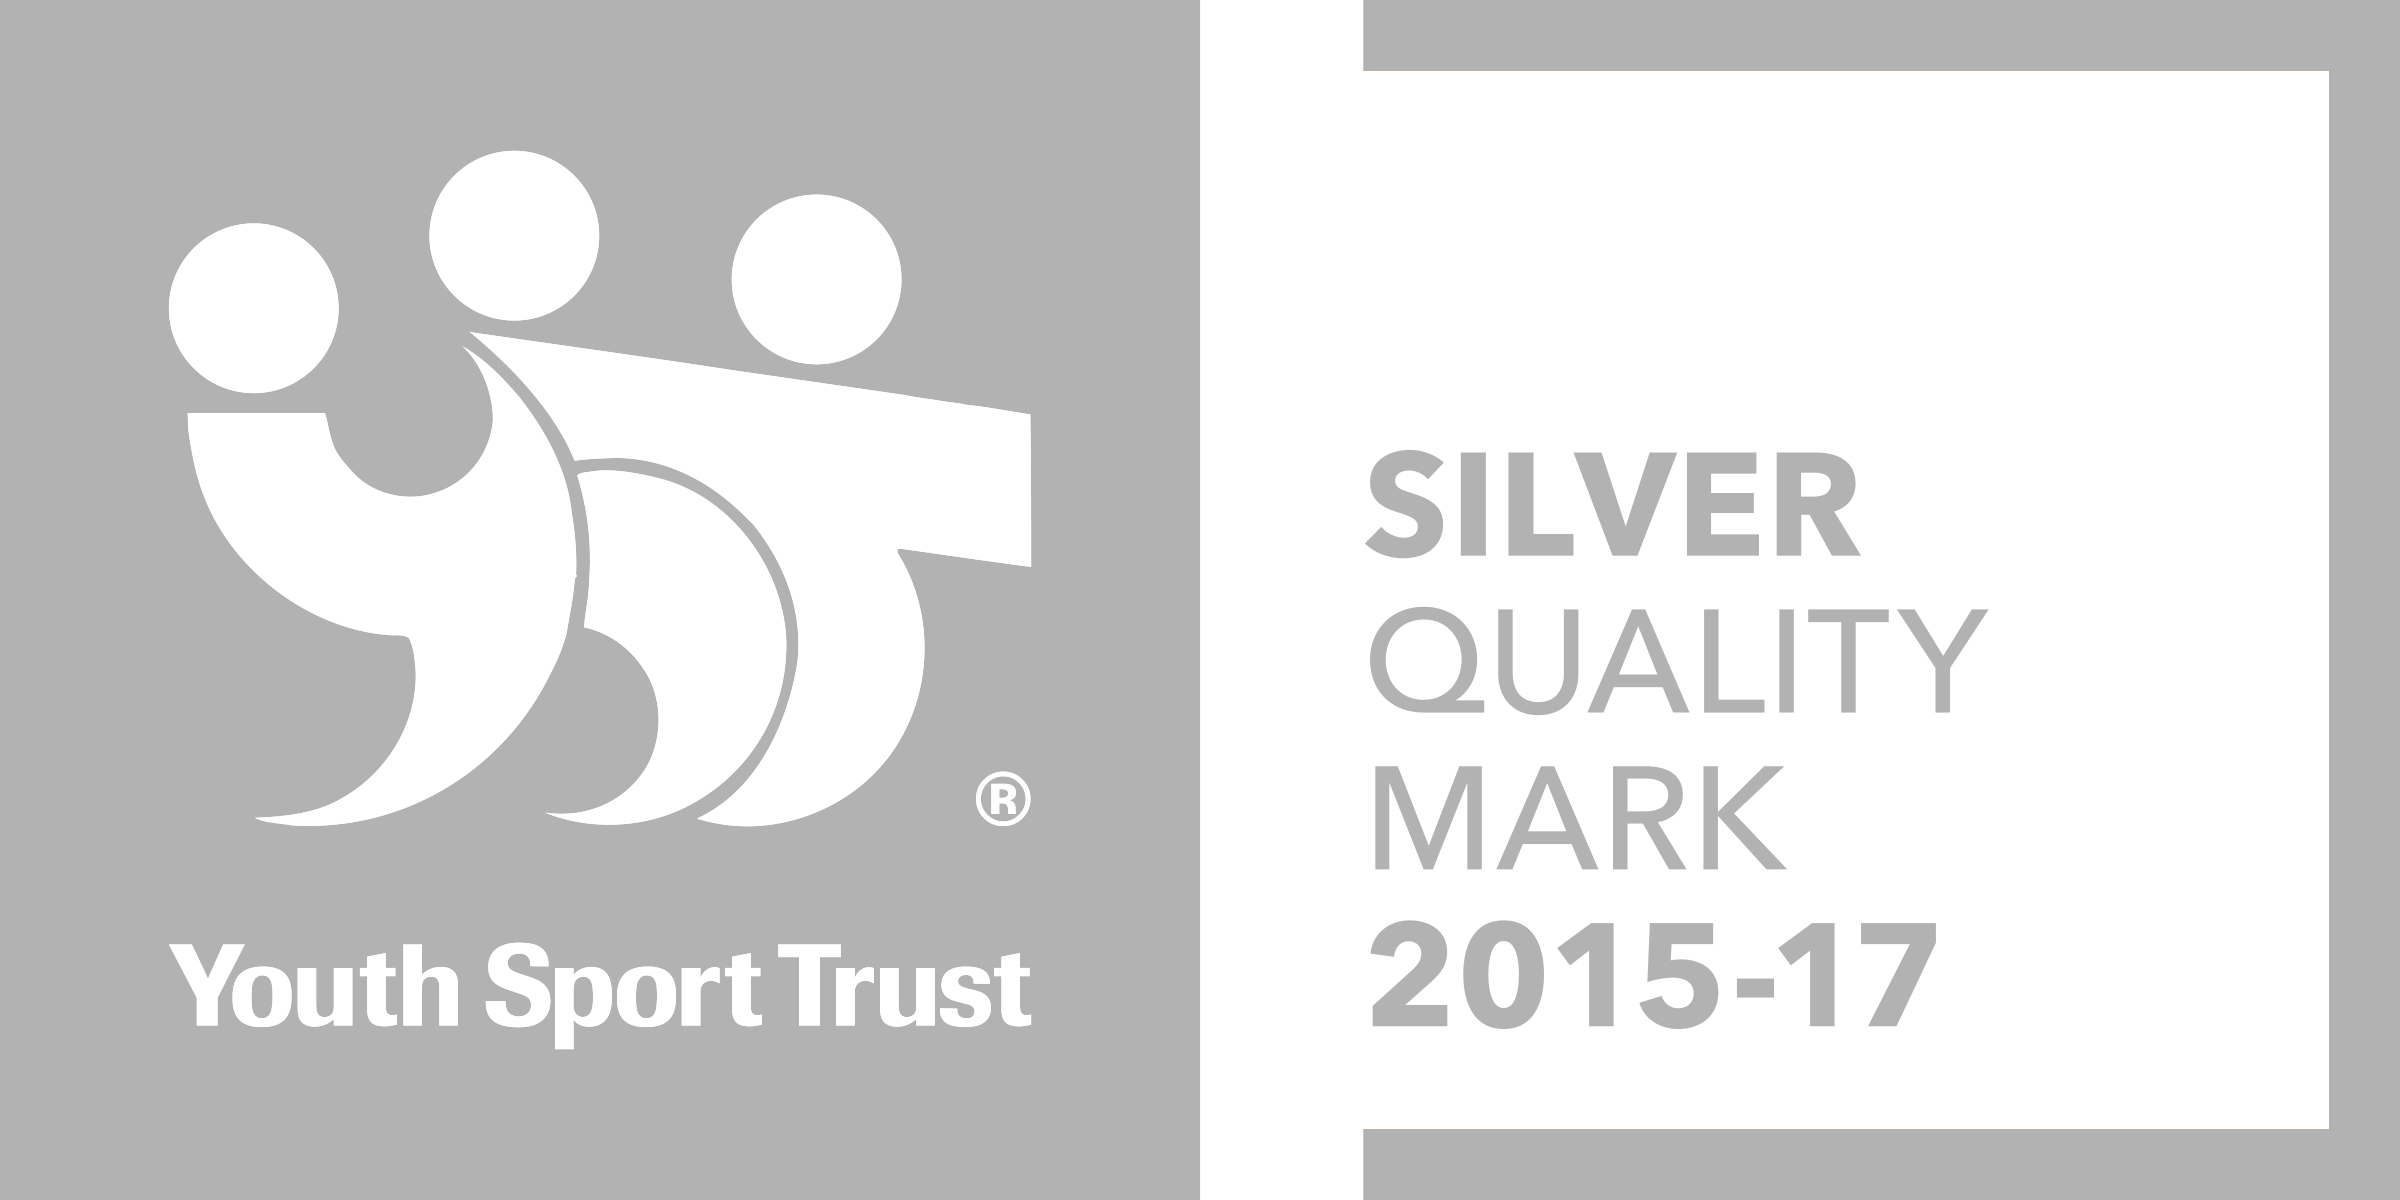 Quality Mark Logo 15-17 - Silver